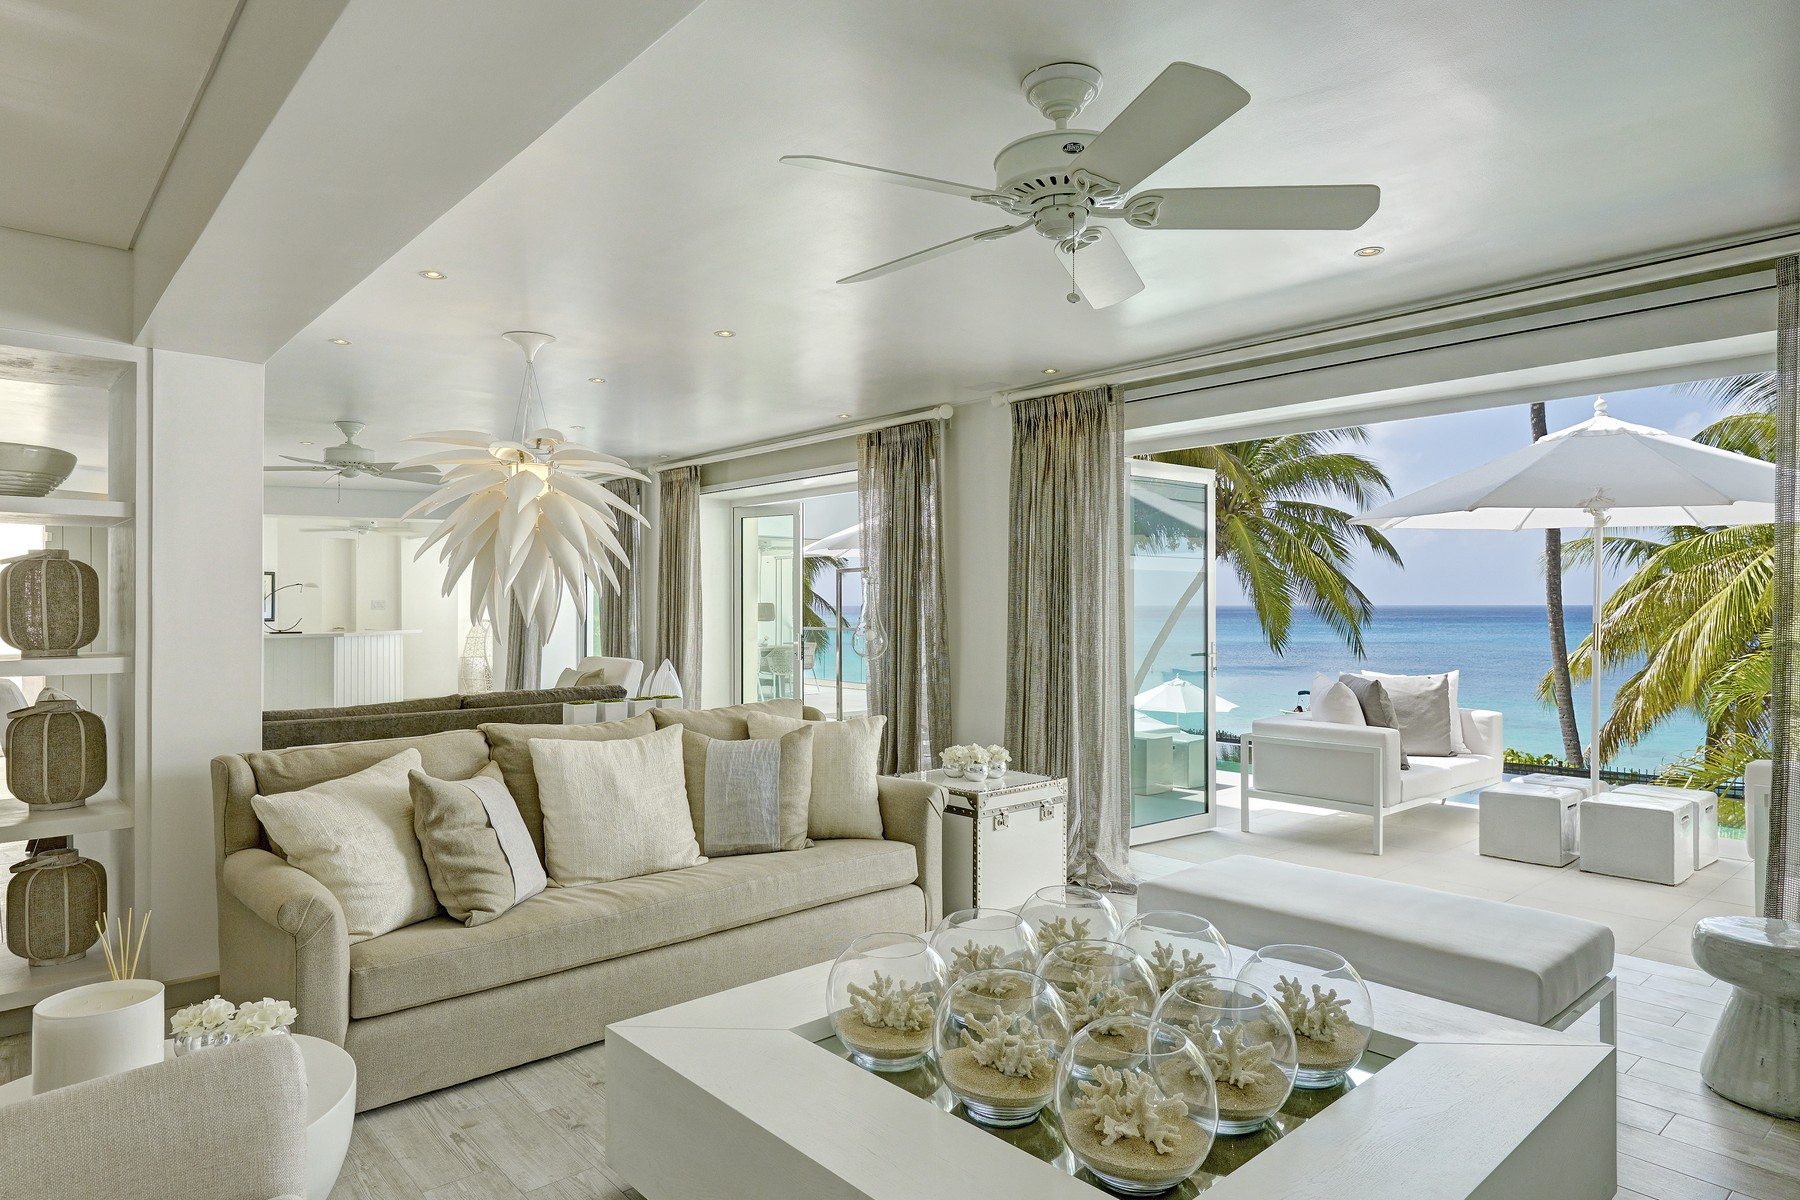 Otros residenciales por un Venta en Footprints Other Saint James, Saint James, Barbados